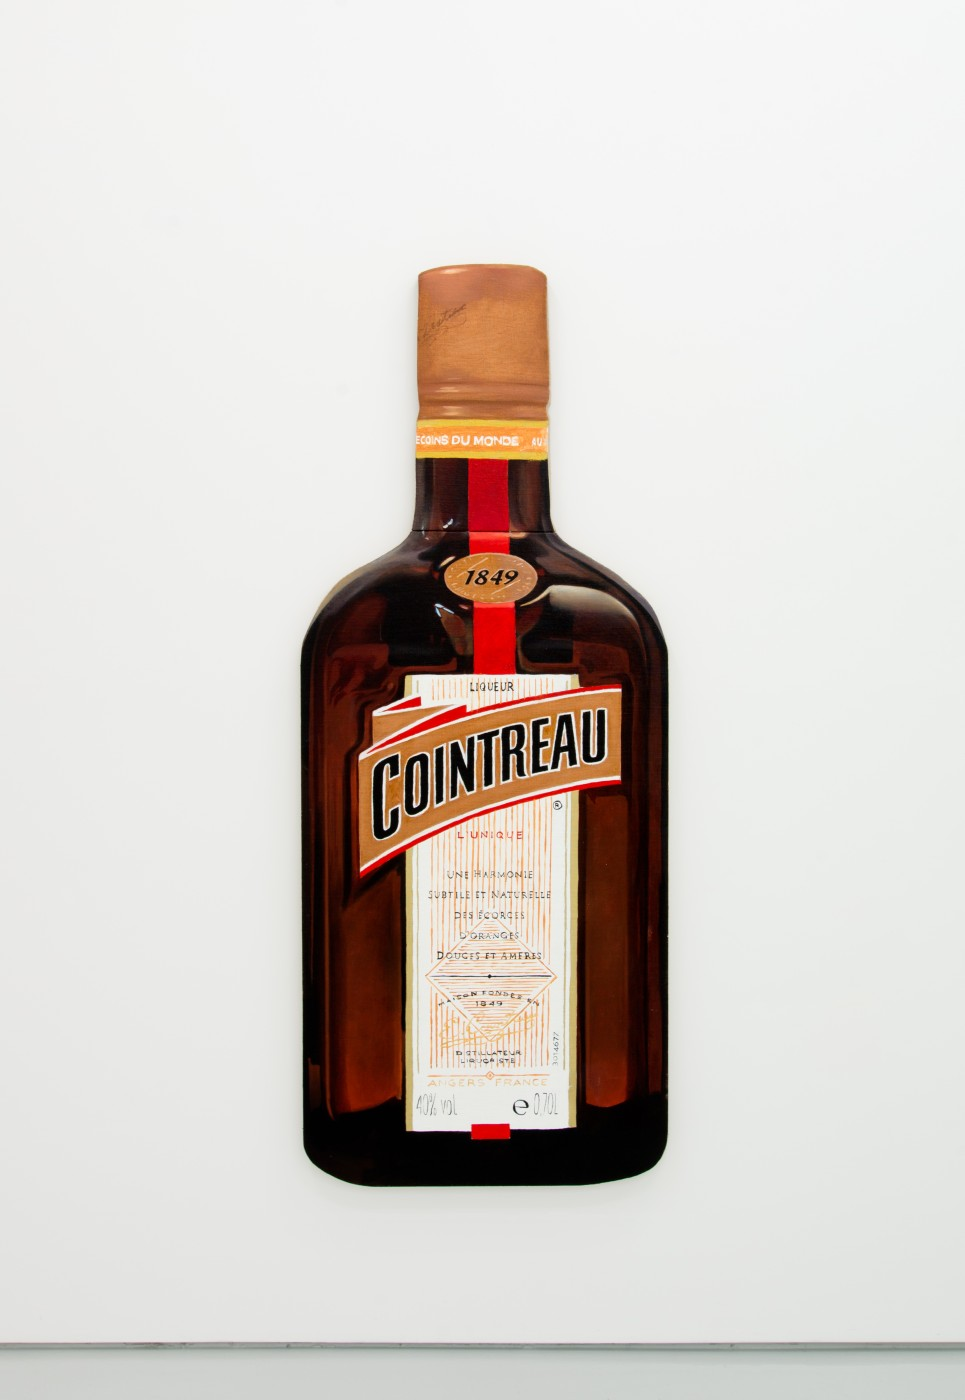 V.S.O.P.  Cointreau</I>, 2017 Oil on linen stretched onto shaped wood board 150 x 59,5 cm / 59 x 23.4 in  PENTTI MONKKONEN